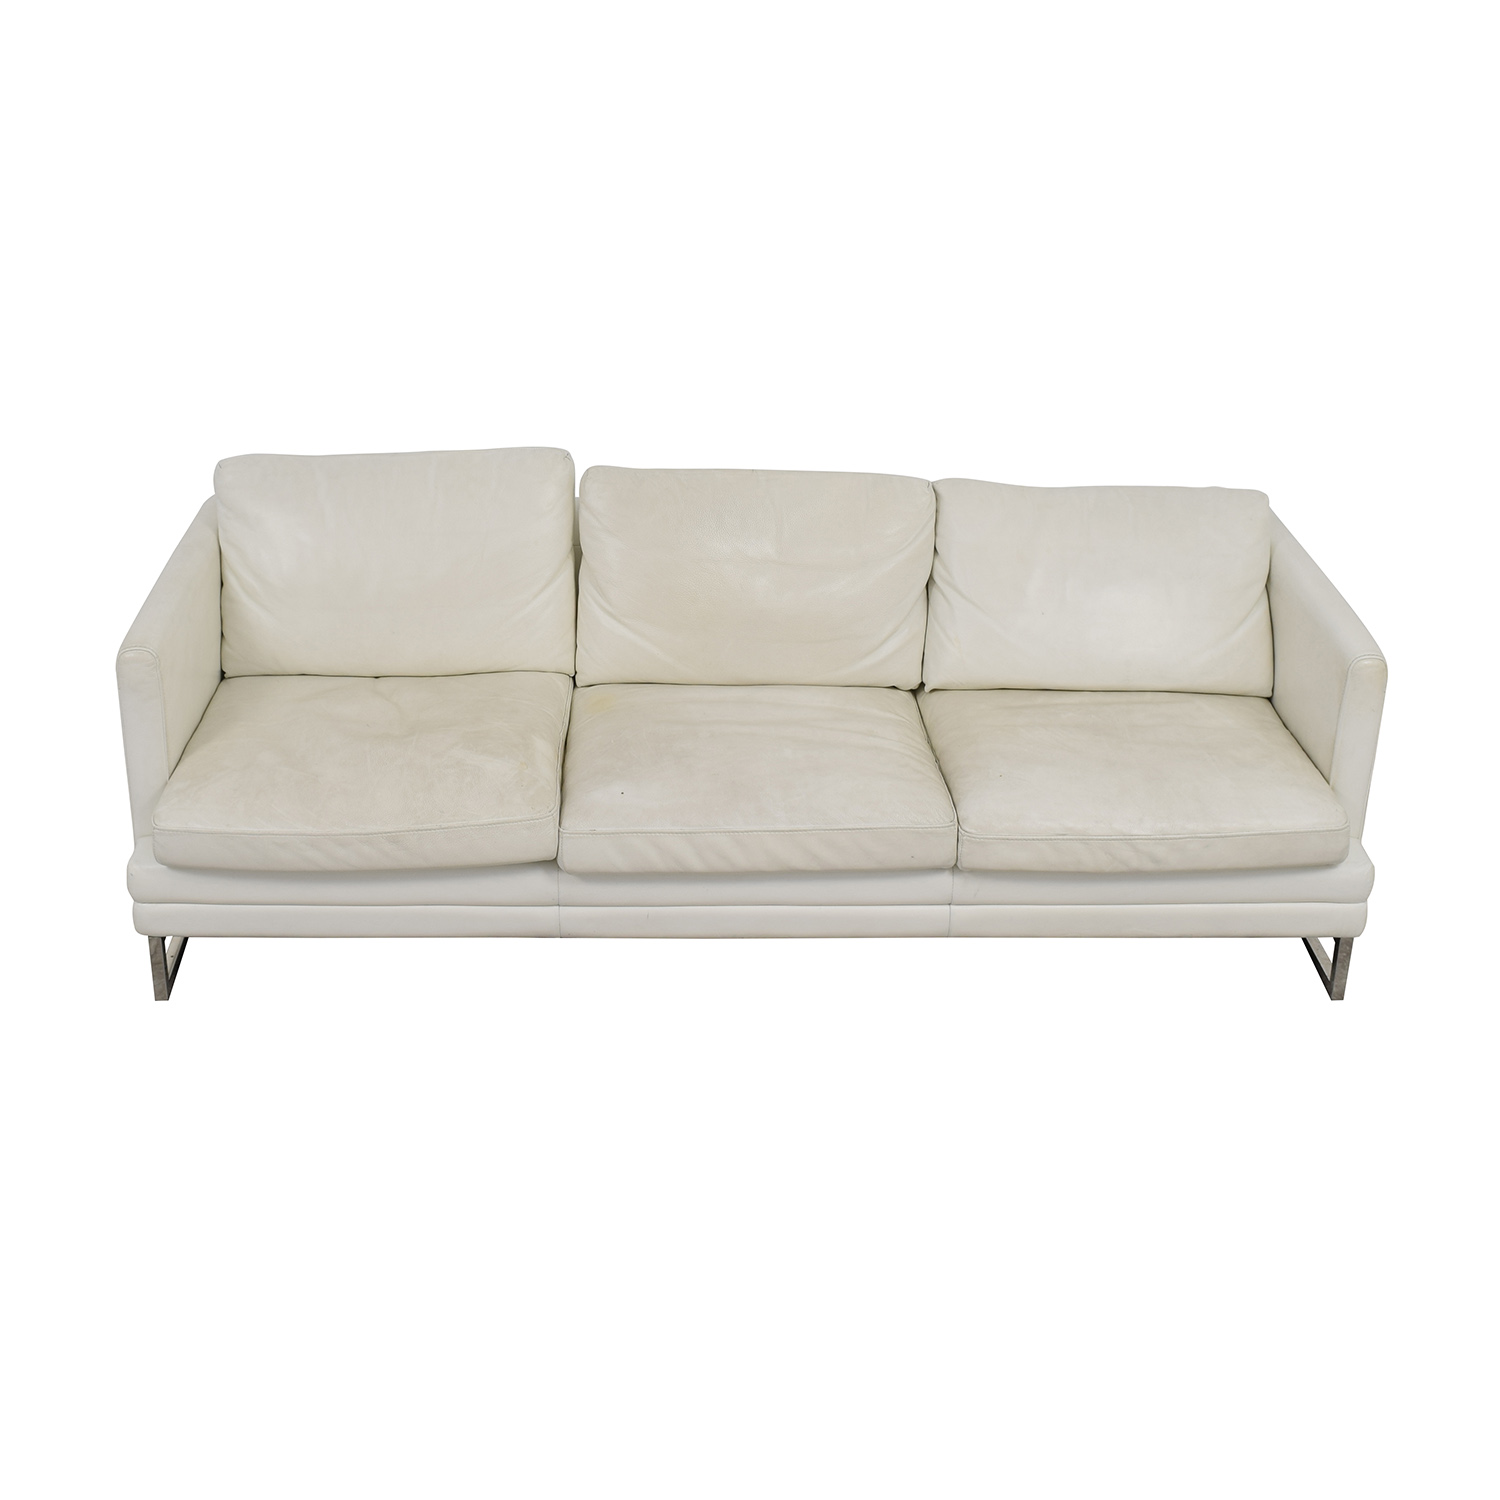 Z Gallerie Z Gallerie White Leather Three-Cushion Sofa